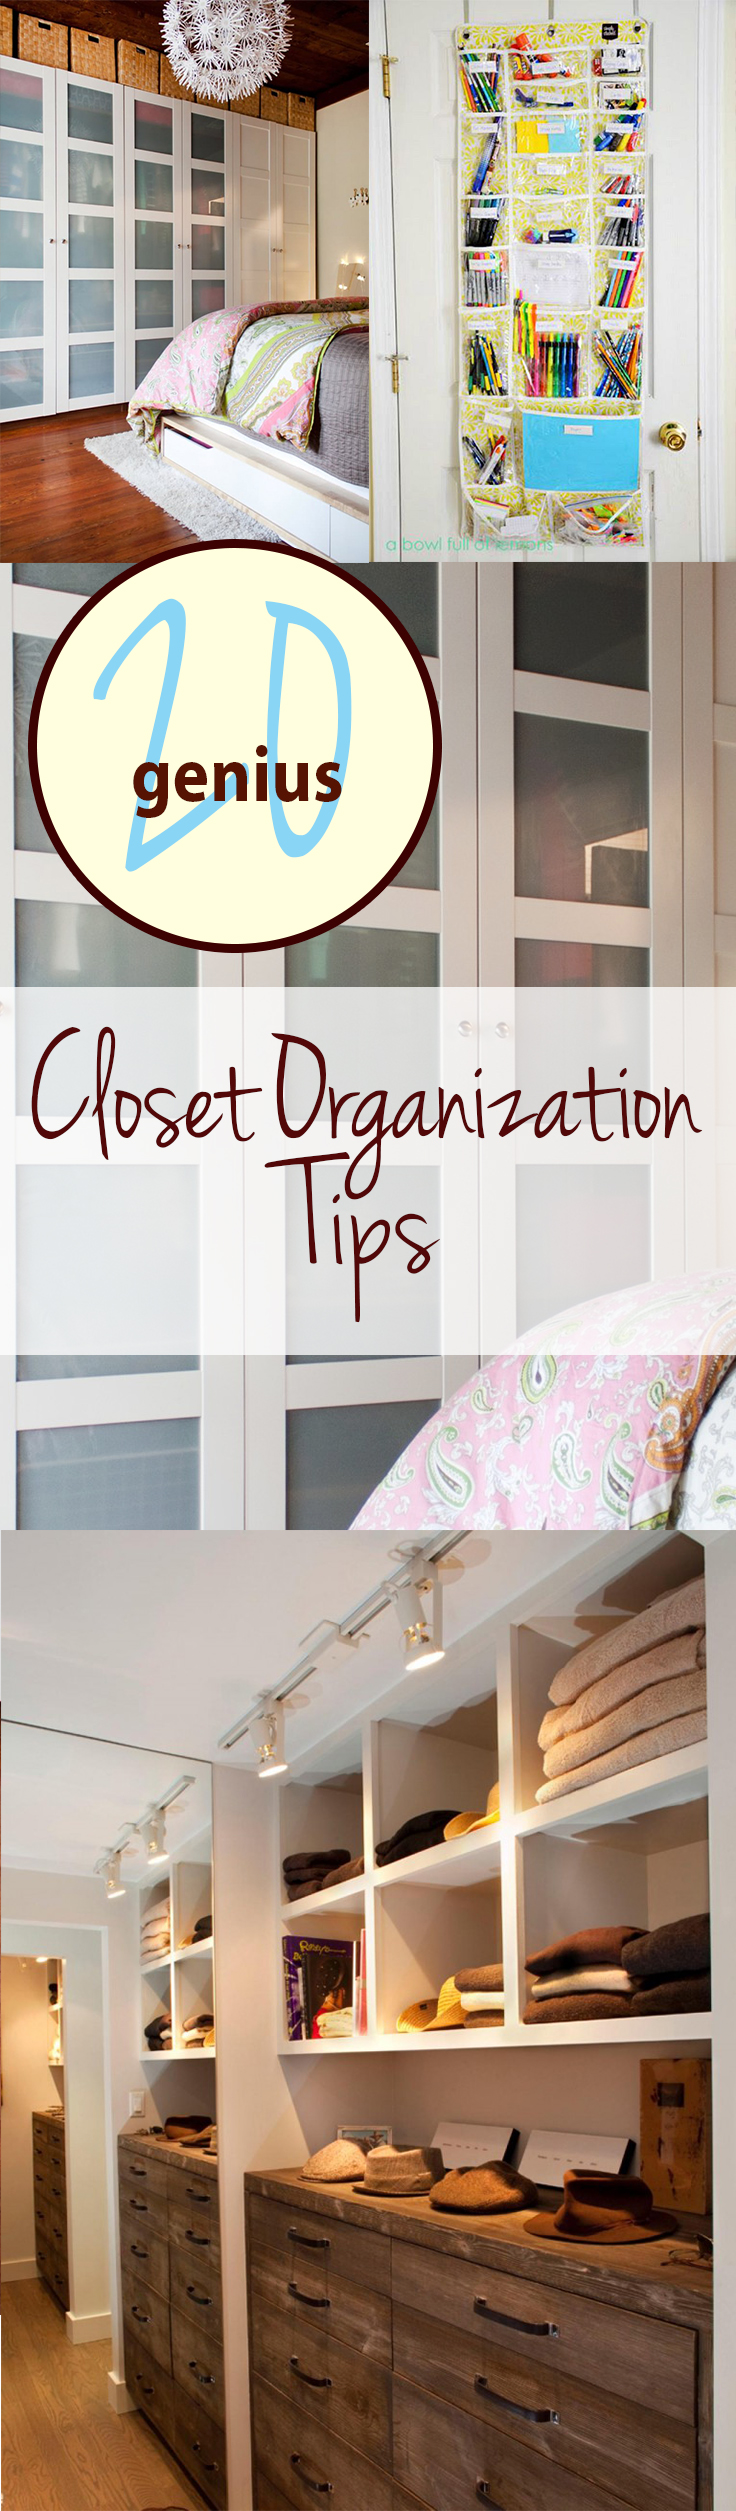 Closet Organization Tips 20 genius closet organization tips - wrapped in rust